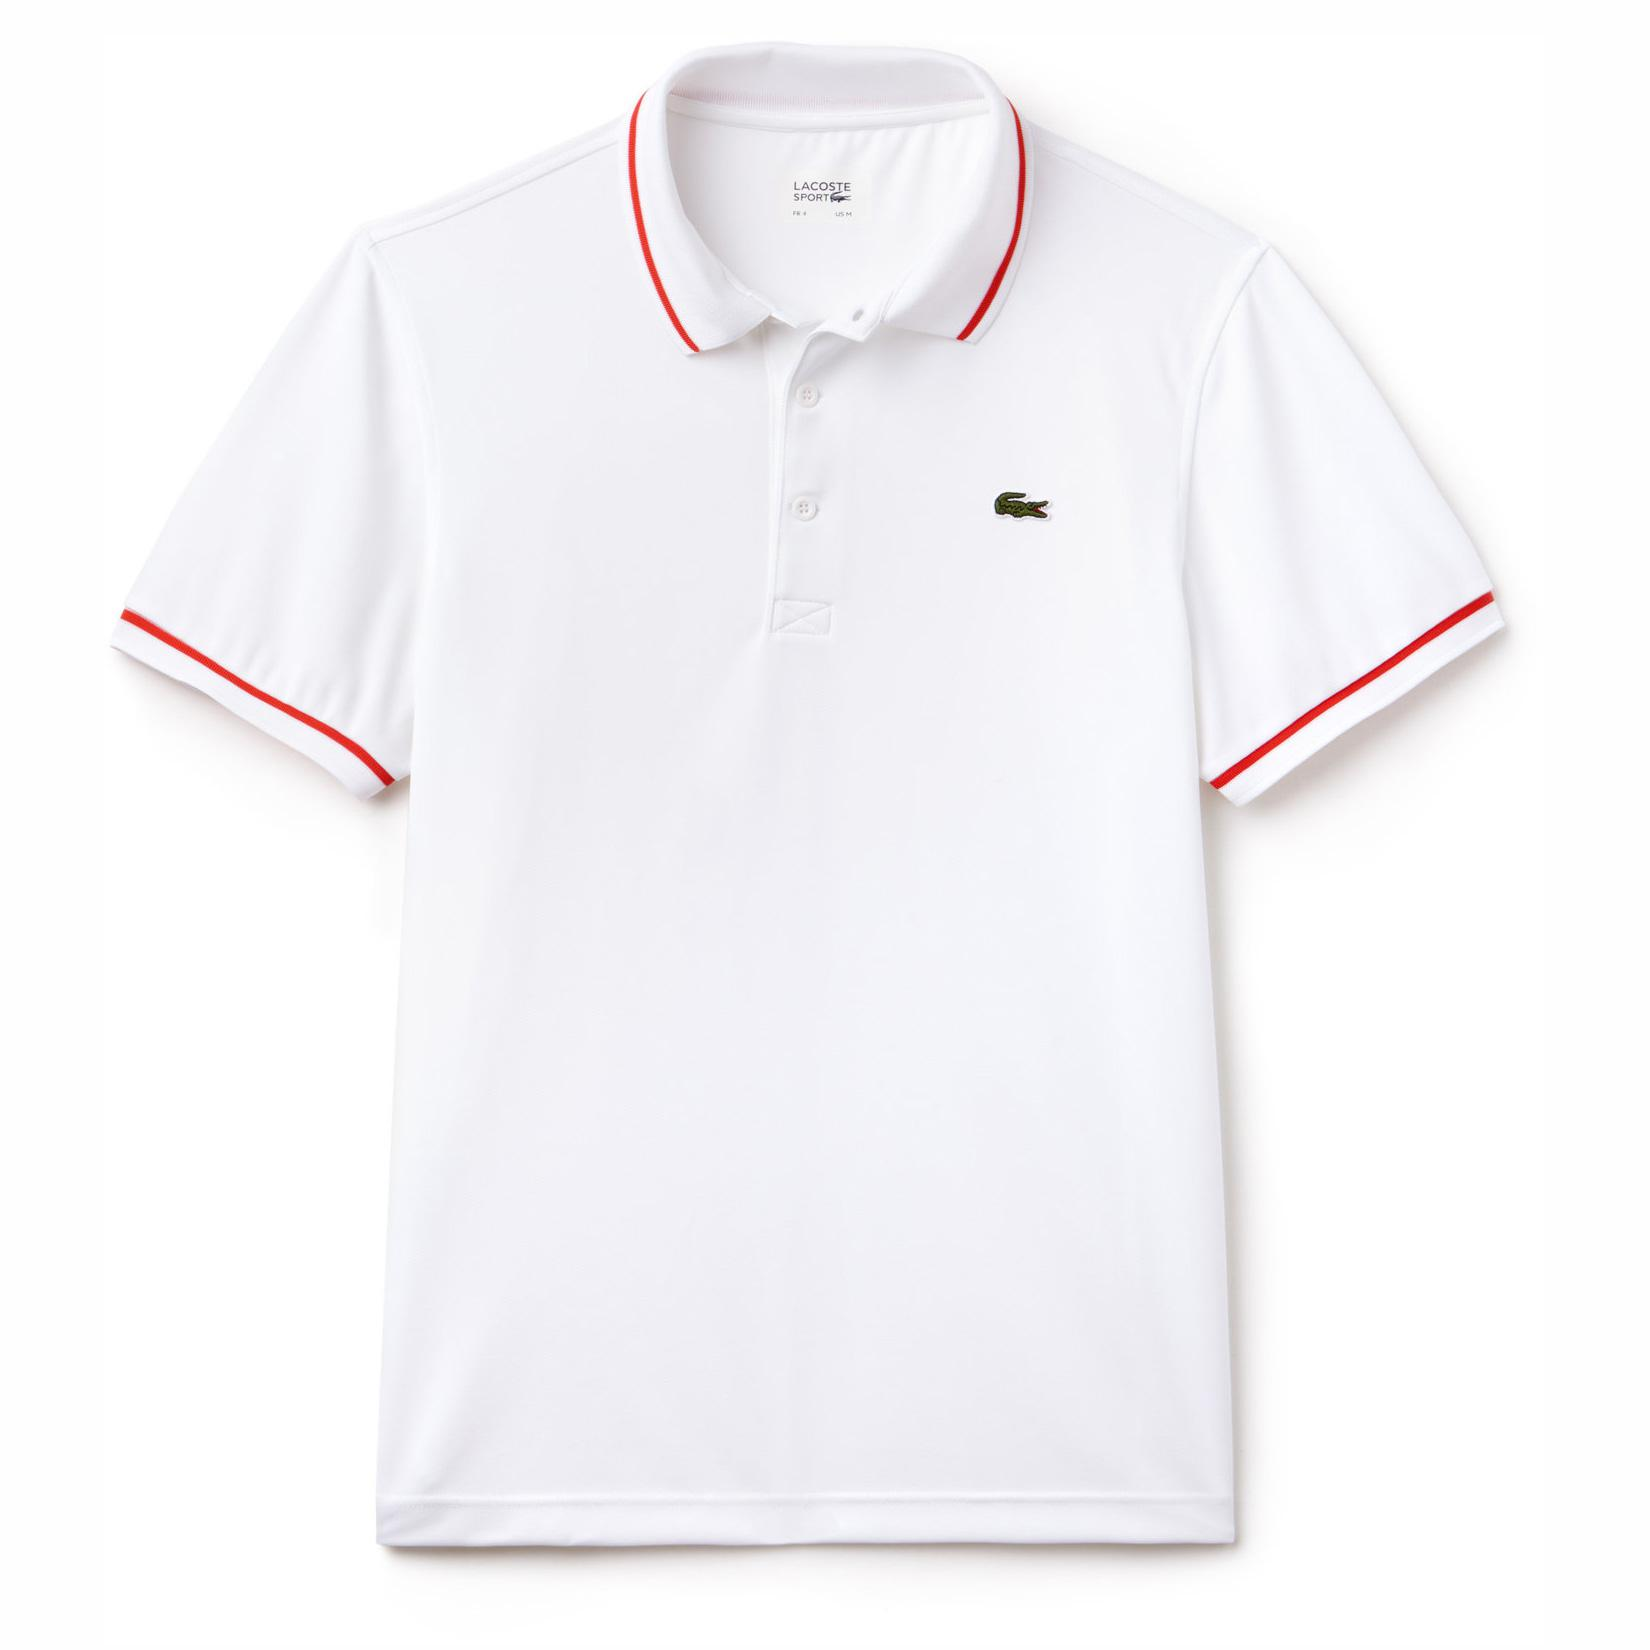 b5f7b3aaf Lacoste Sport Mens Ultra-Dry Tennis Polo - White/Red - Tennisnuts.com